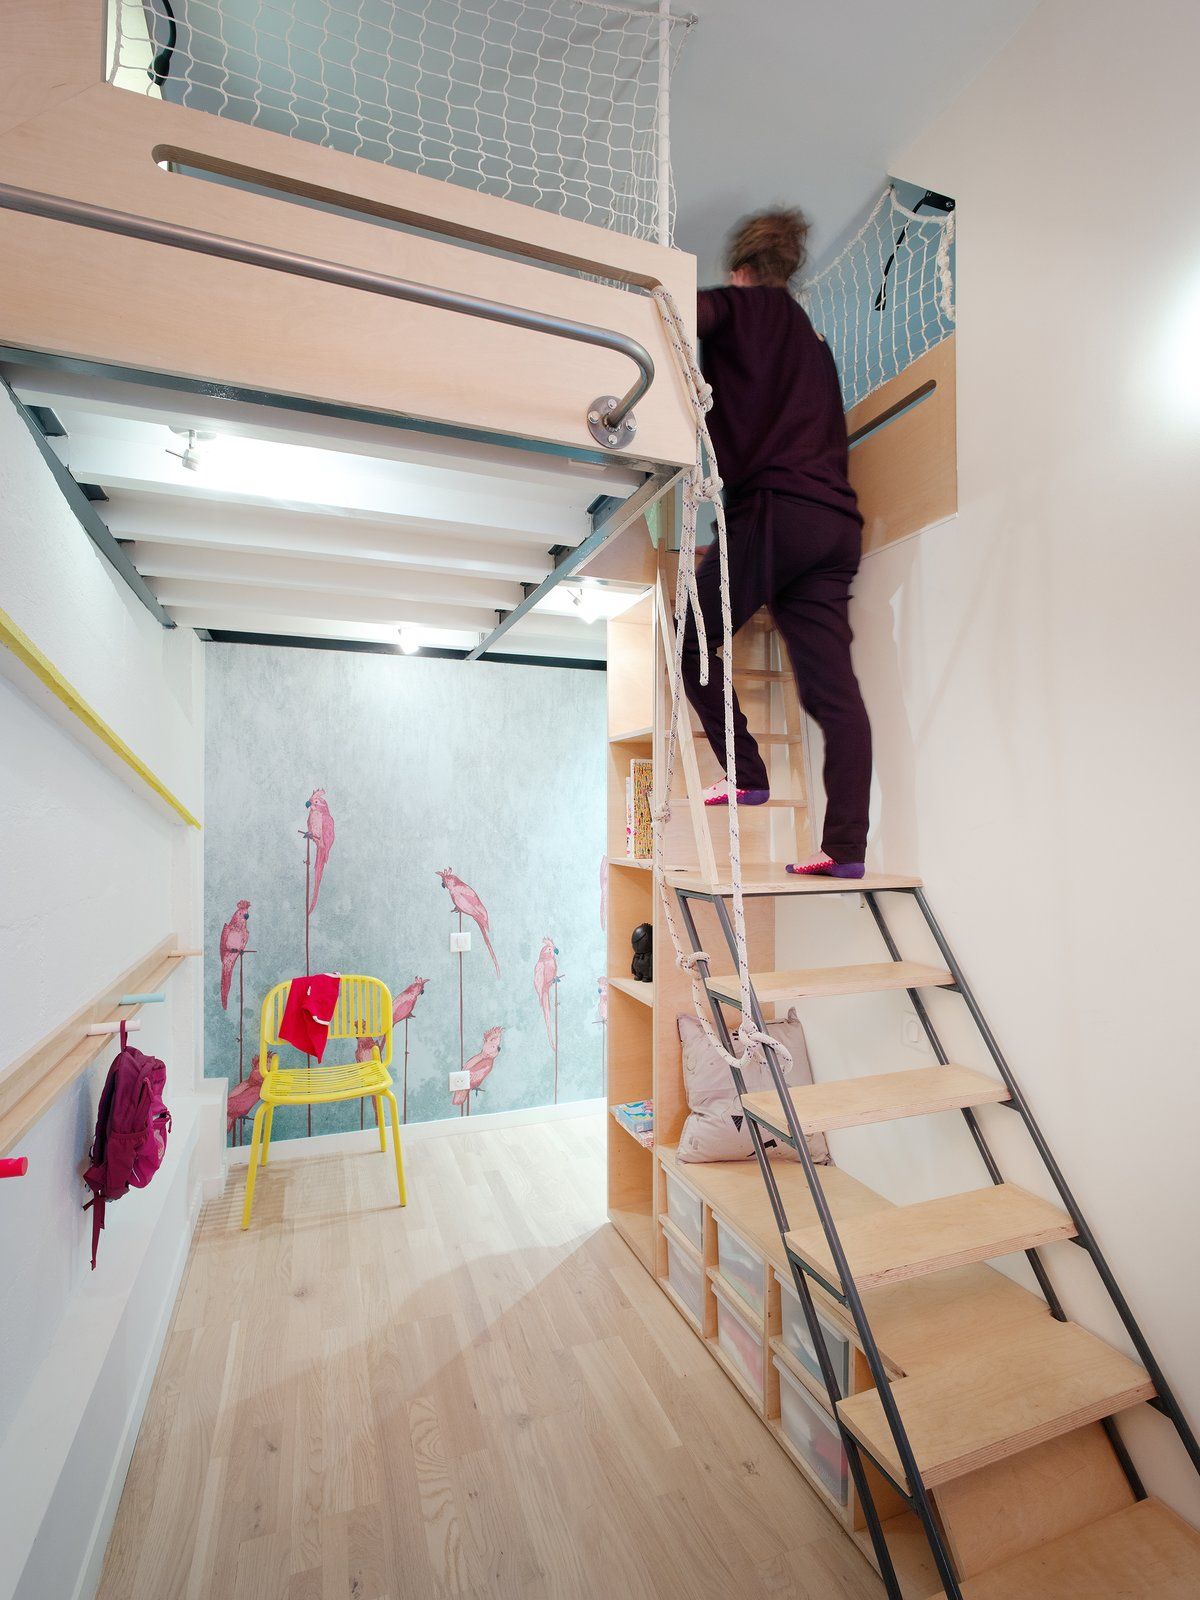 From the alcove playroom, a ladder leads up to a mezzanine loft with a double bed and two single bed.